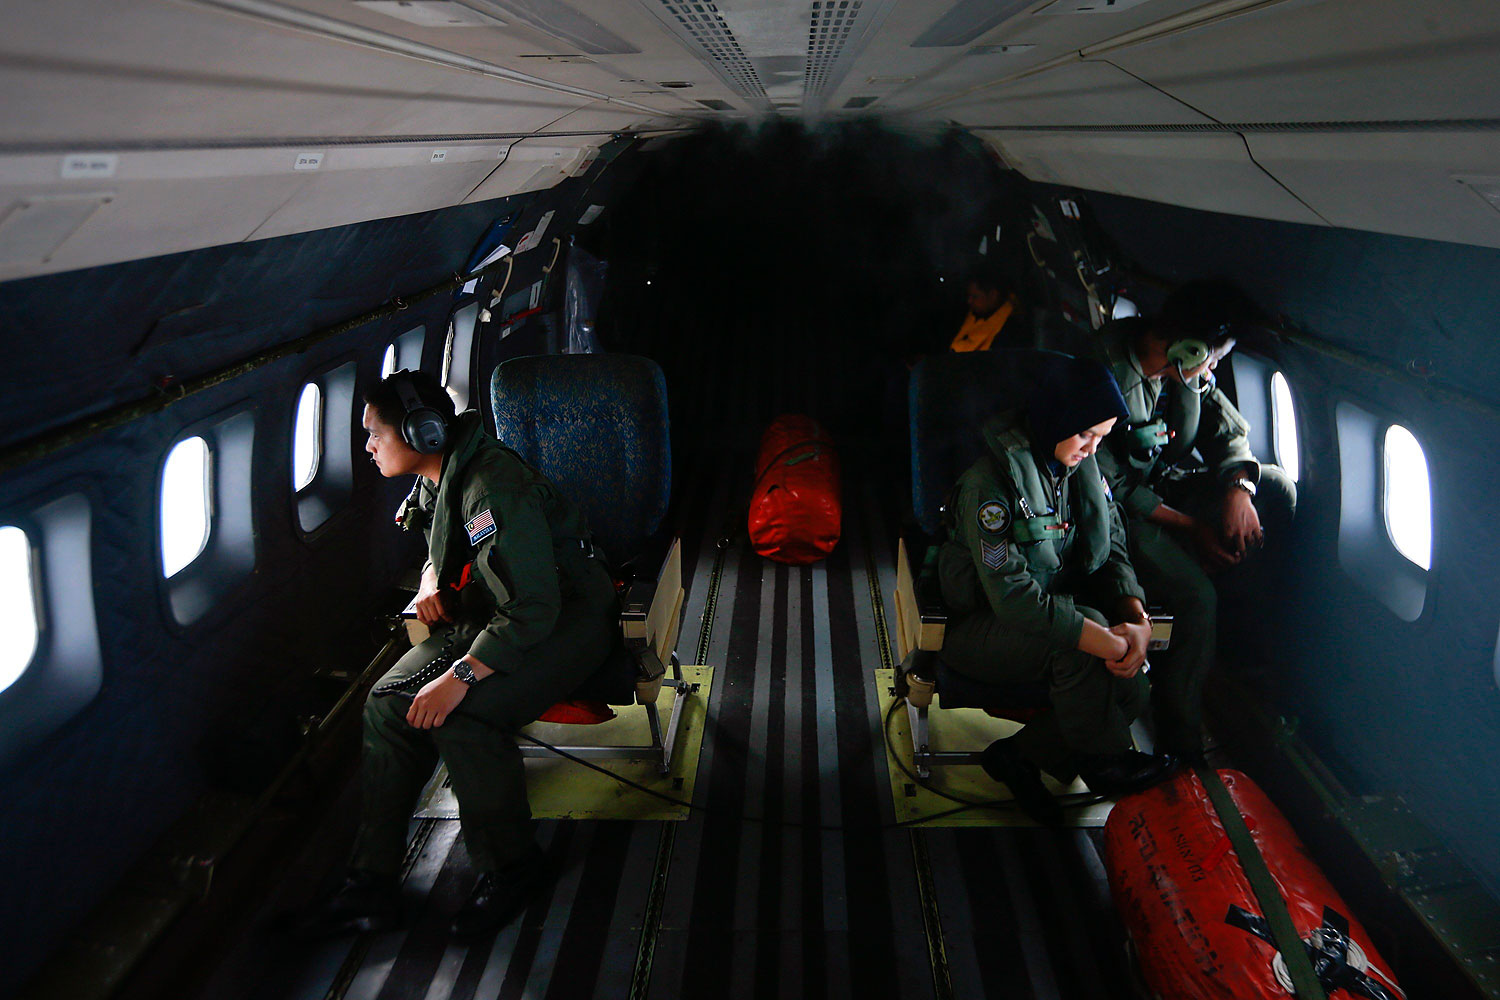 Crew members from the Royal Malaysian Air Force look through windows of an aircraft during an operation to find Malaysia Airlines Flight 370 in the Strait of Malacca on March 13, 2014